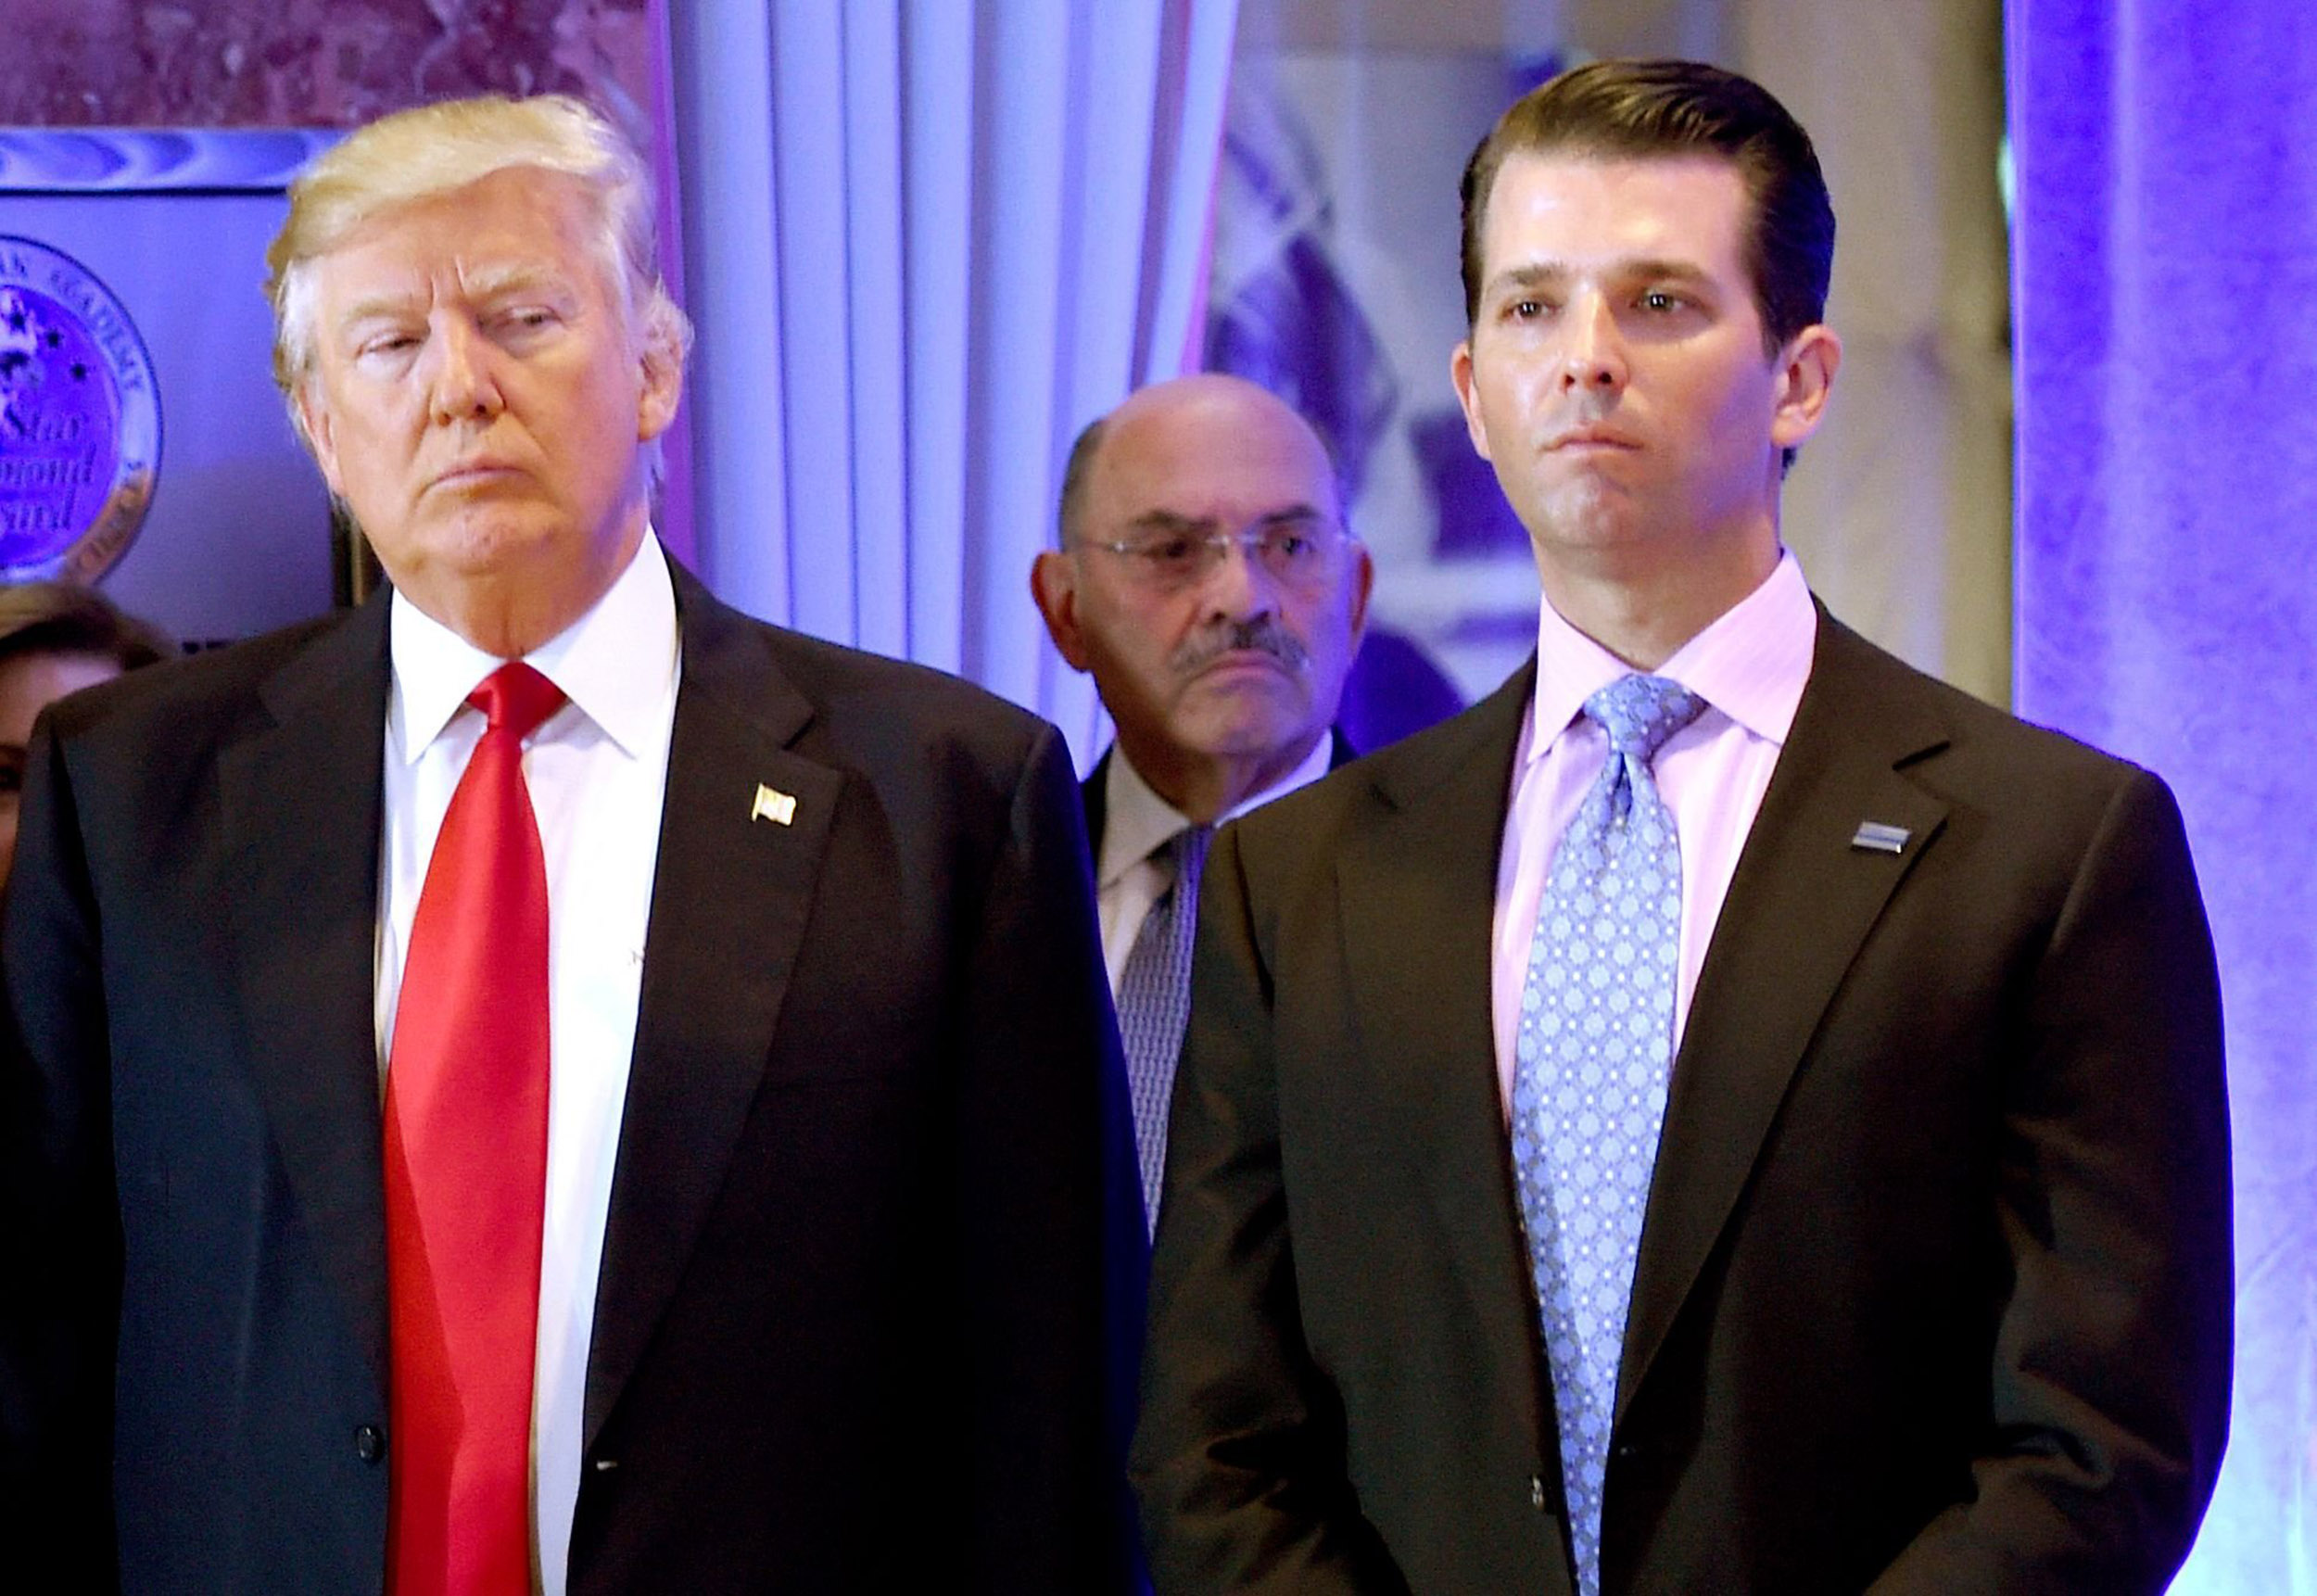 Adding to Trump's woes, grand jury indicts his core business thumbnail